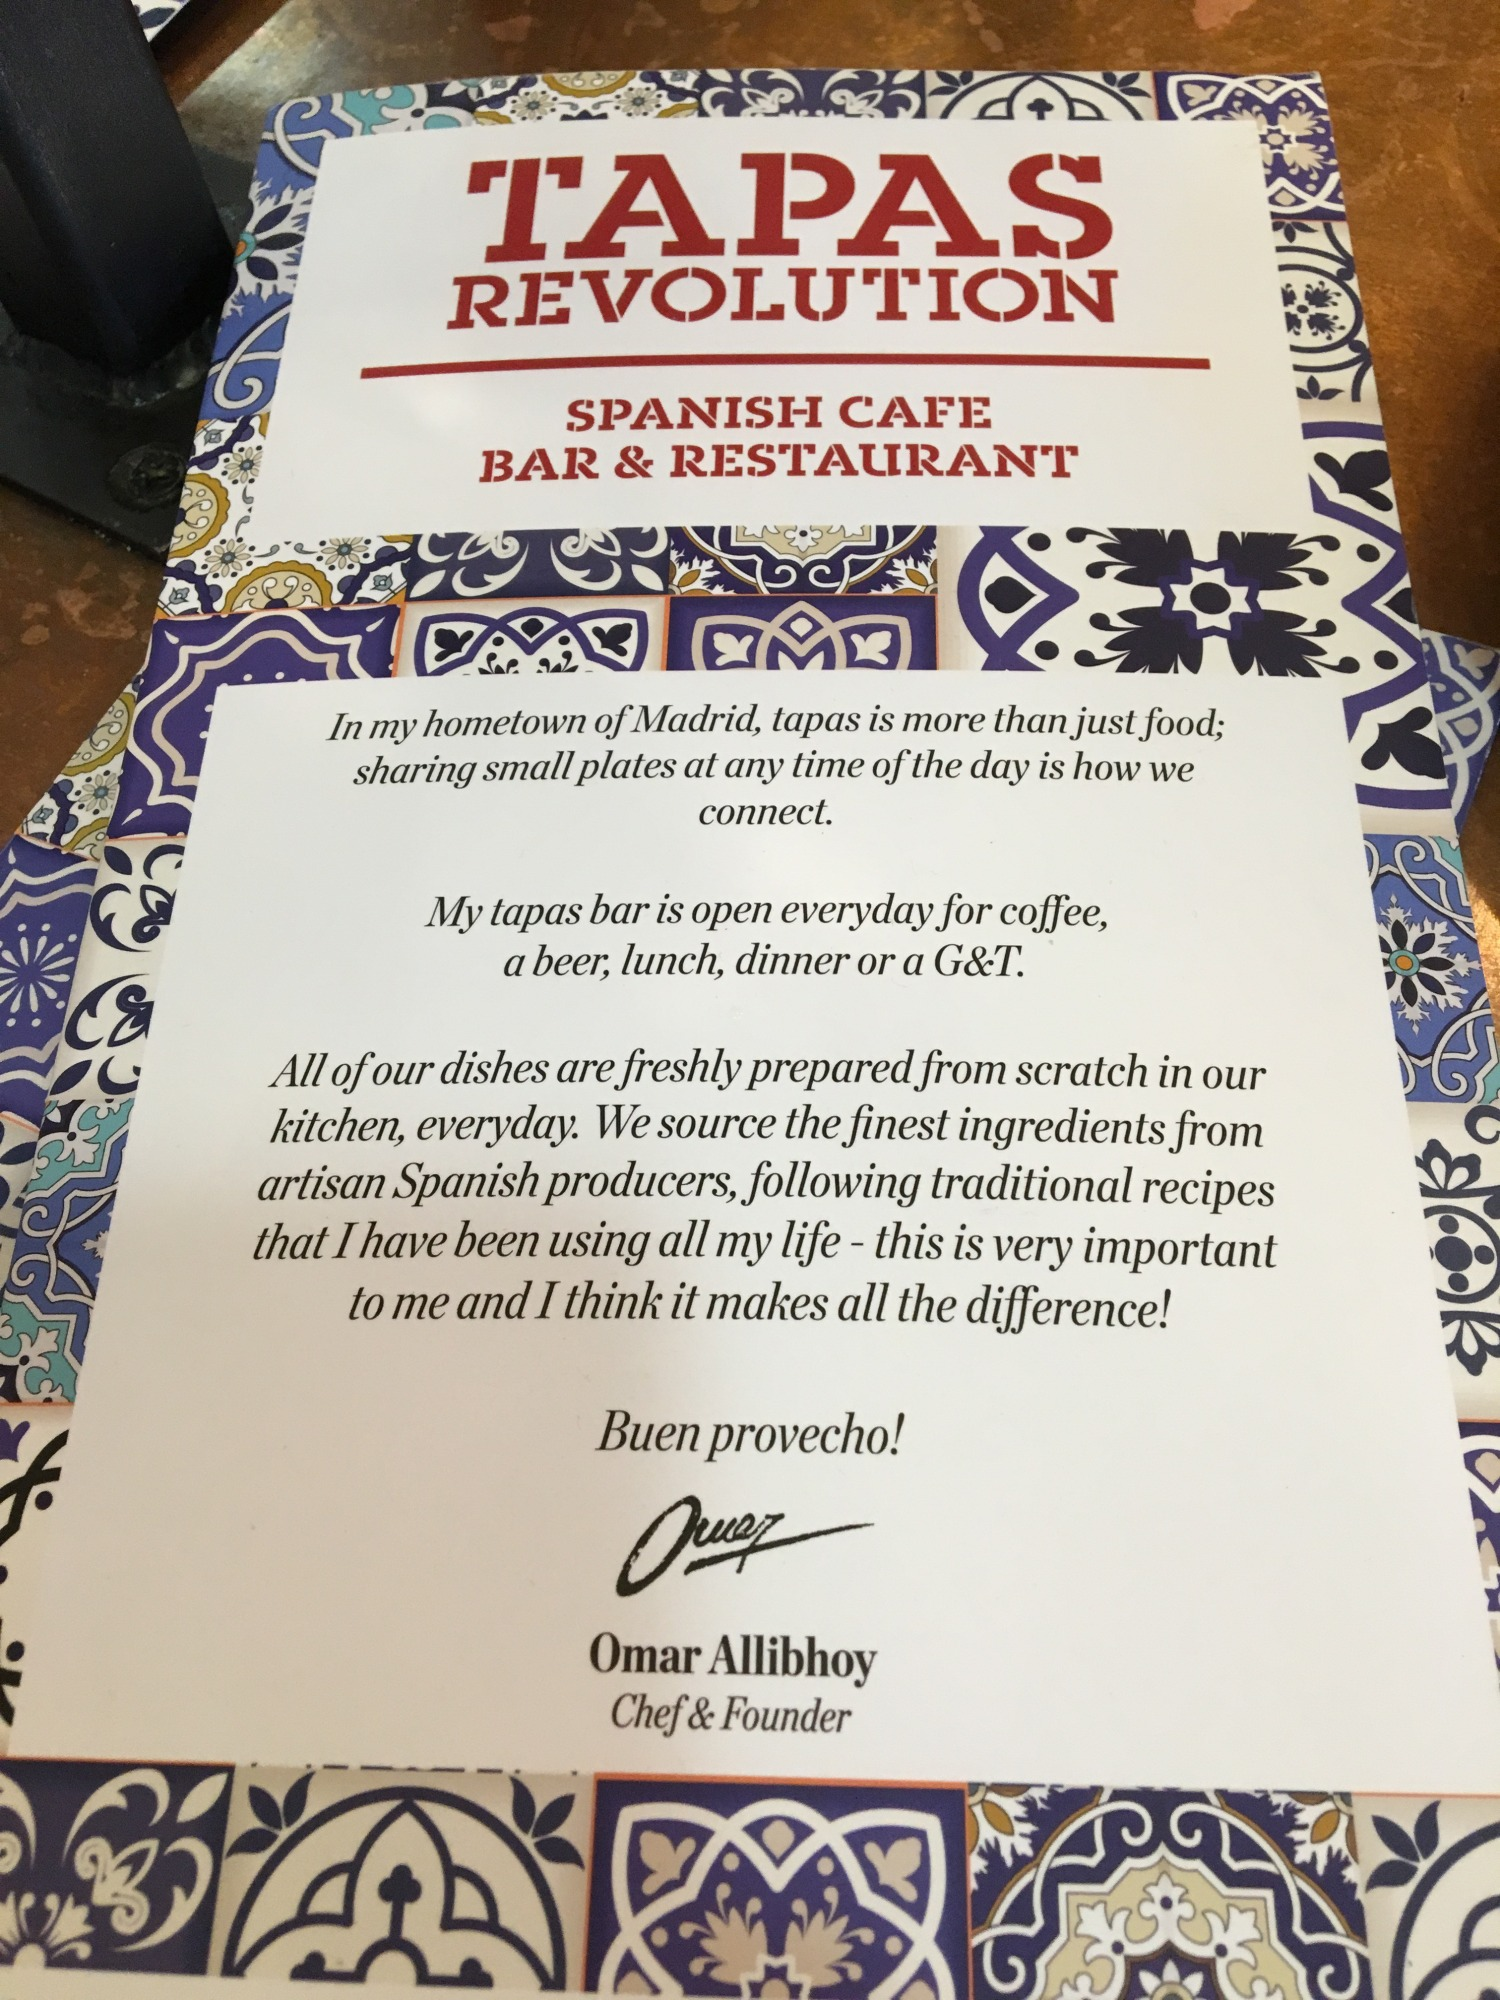 Tapas Revolution menu